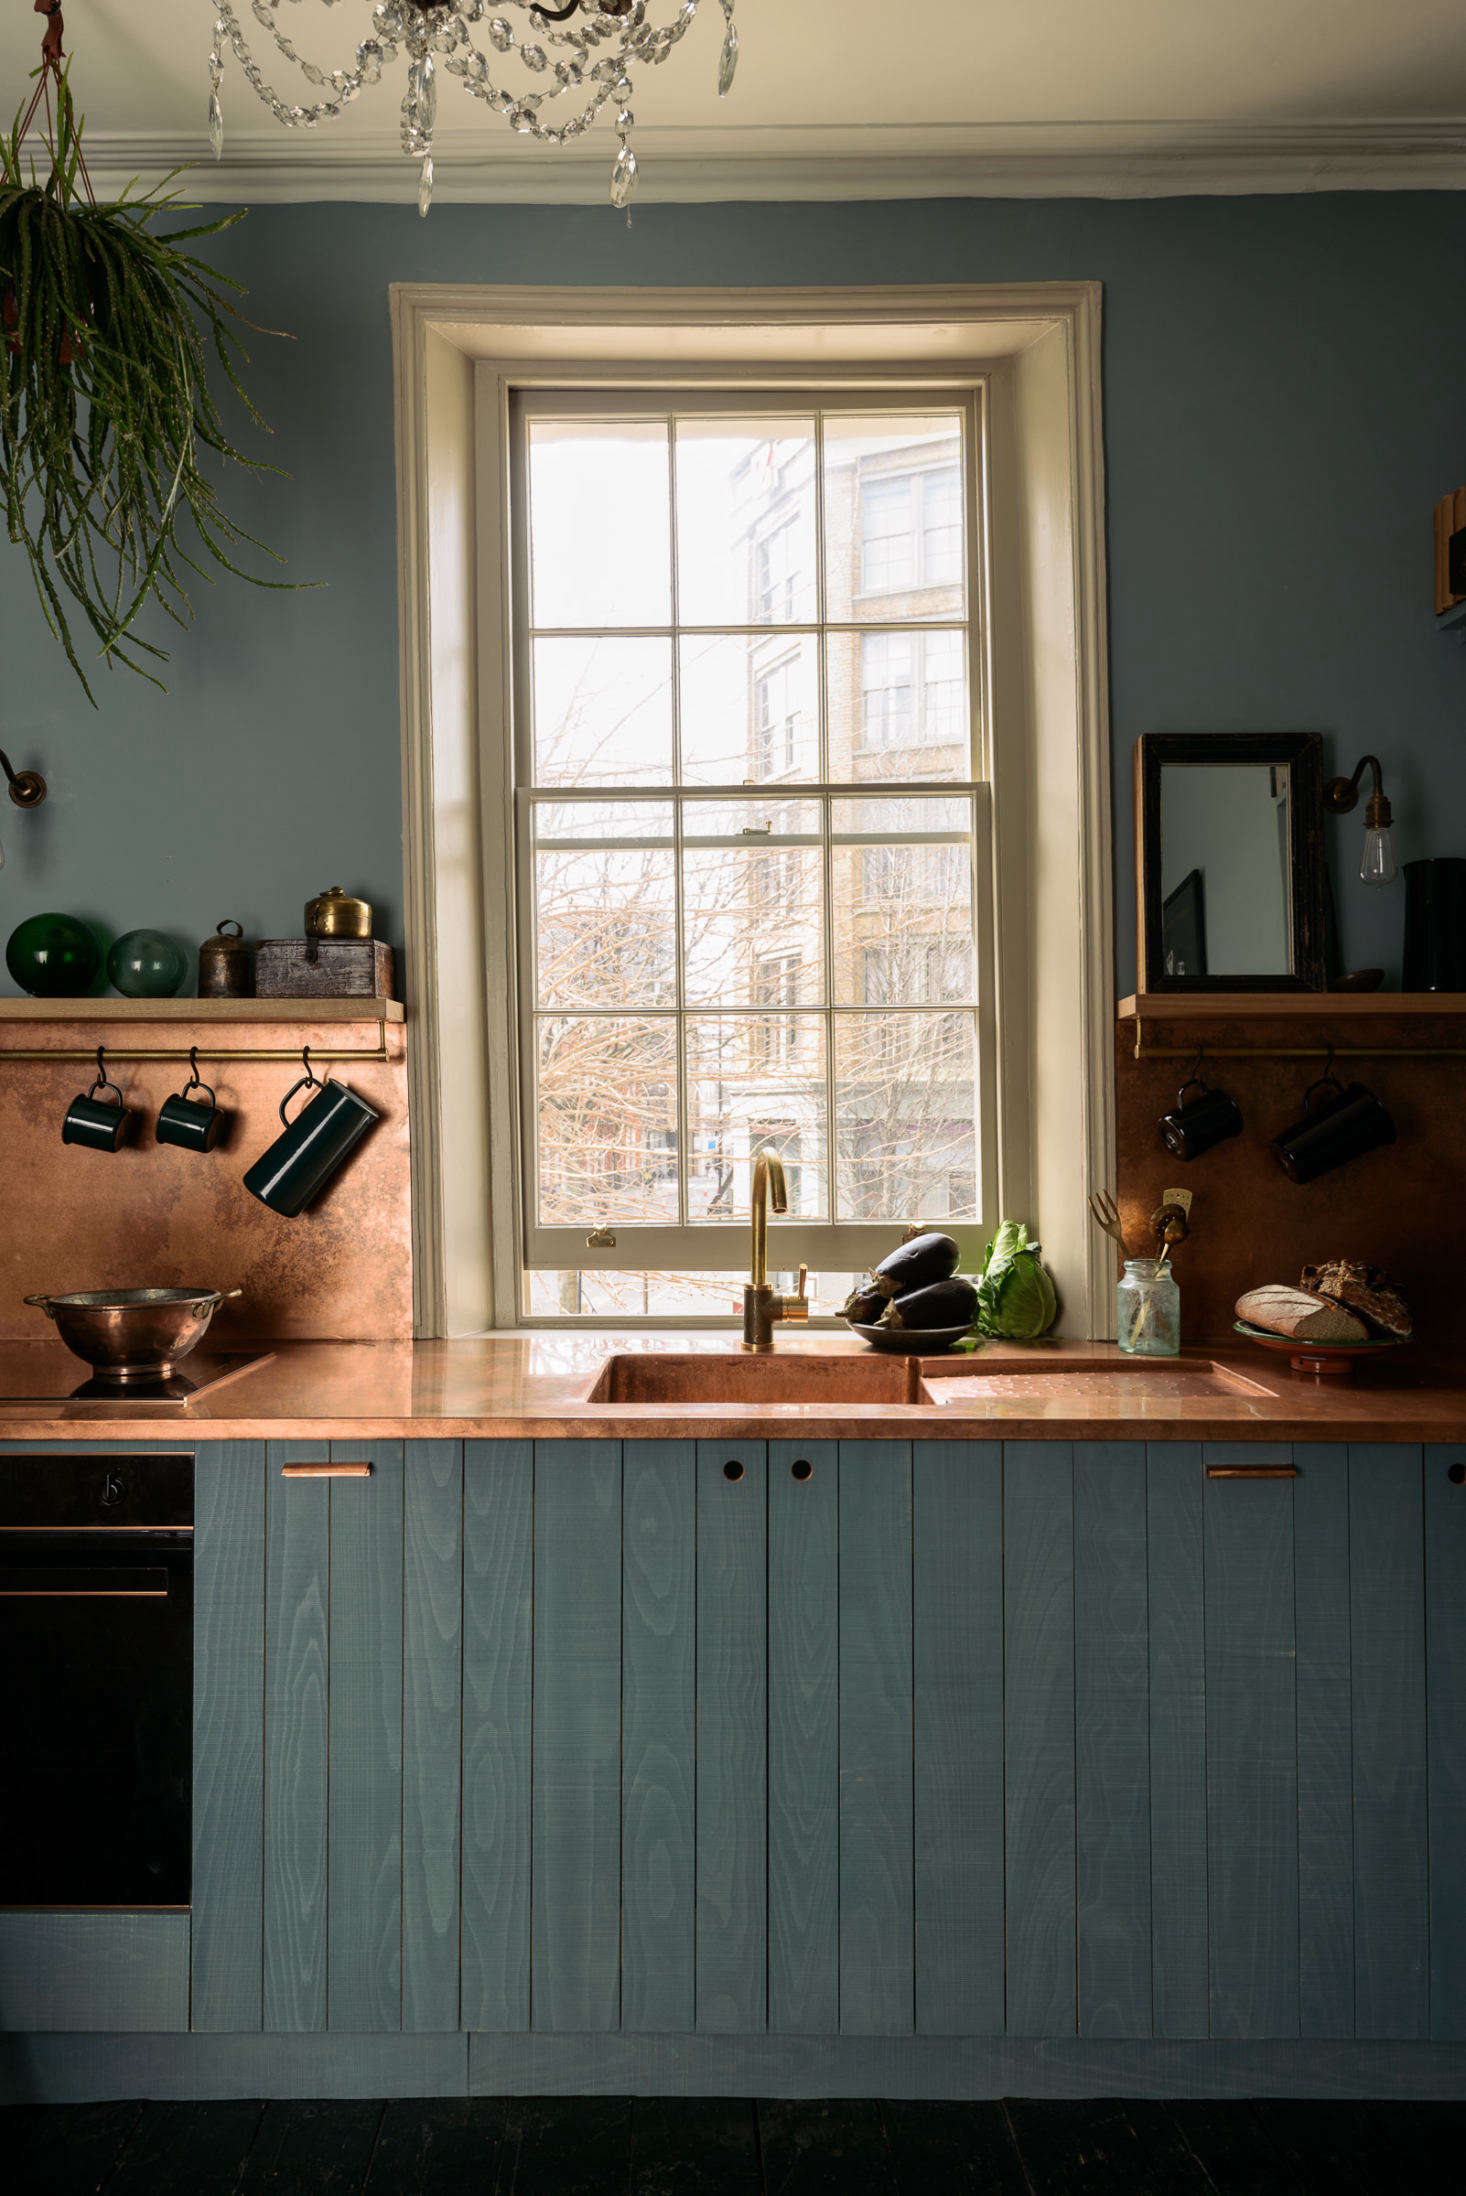 The kitchen has countertopsmade of a single sheet of copper (so no surface seams), with an integrated copper sink. The copper has a matte finish and a lightly pre-applied finish for patina.